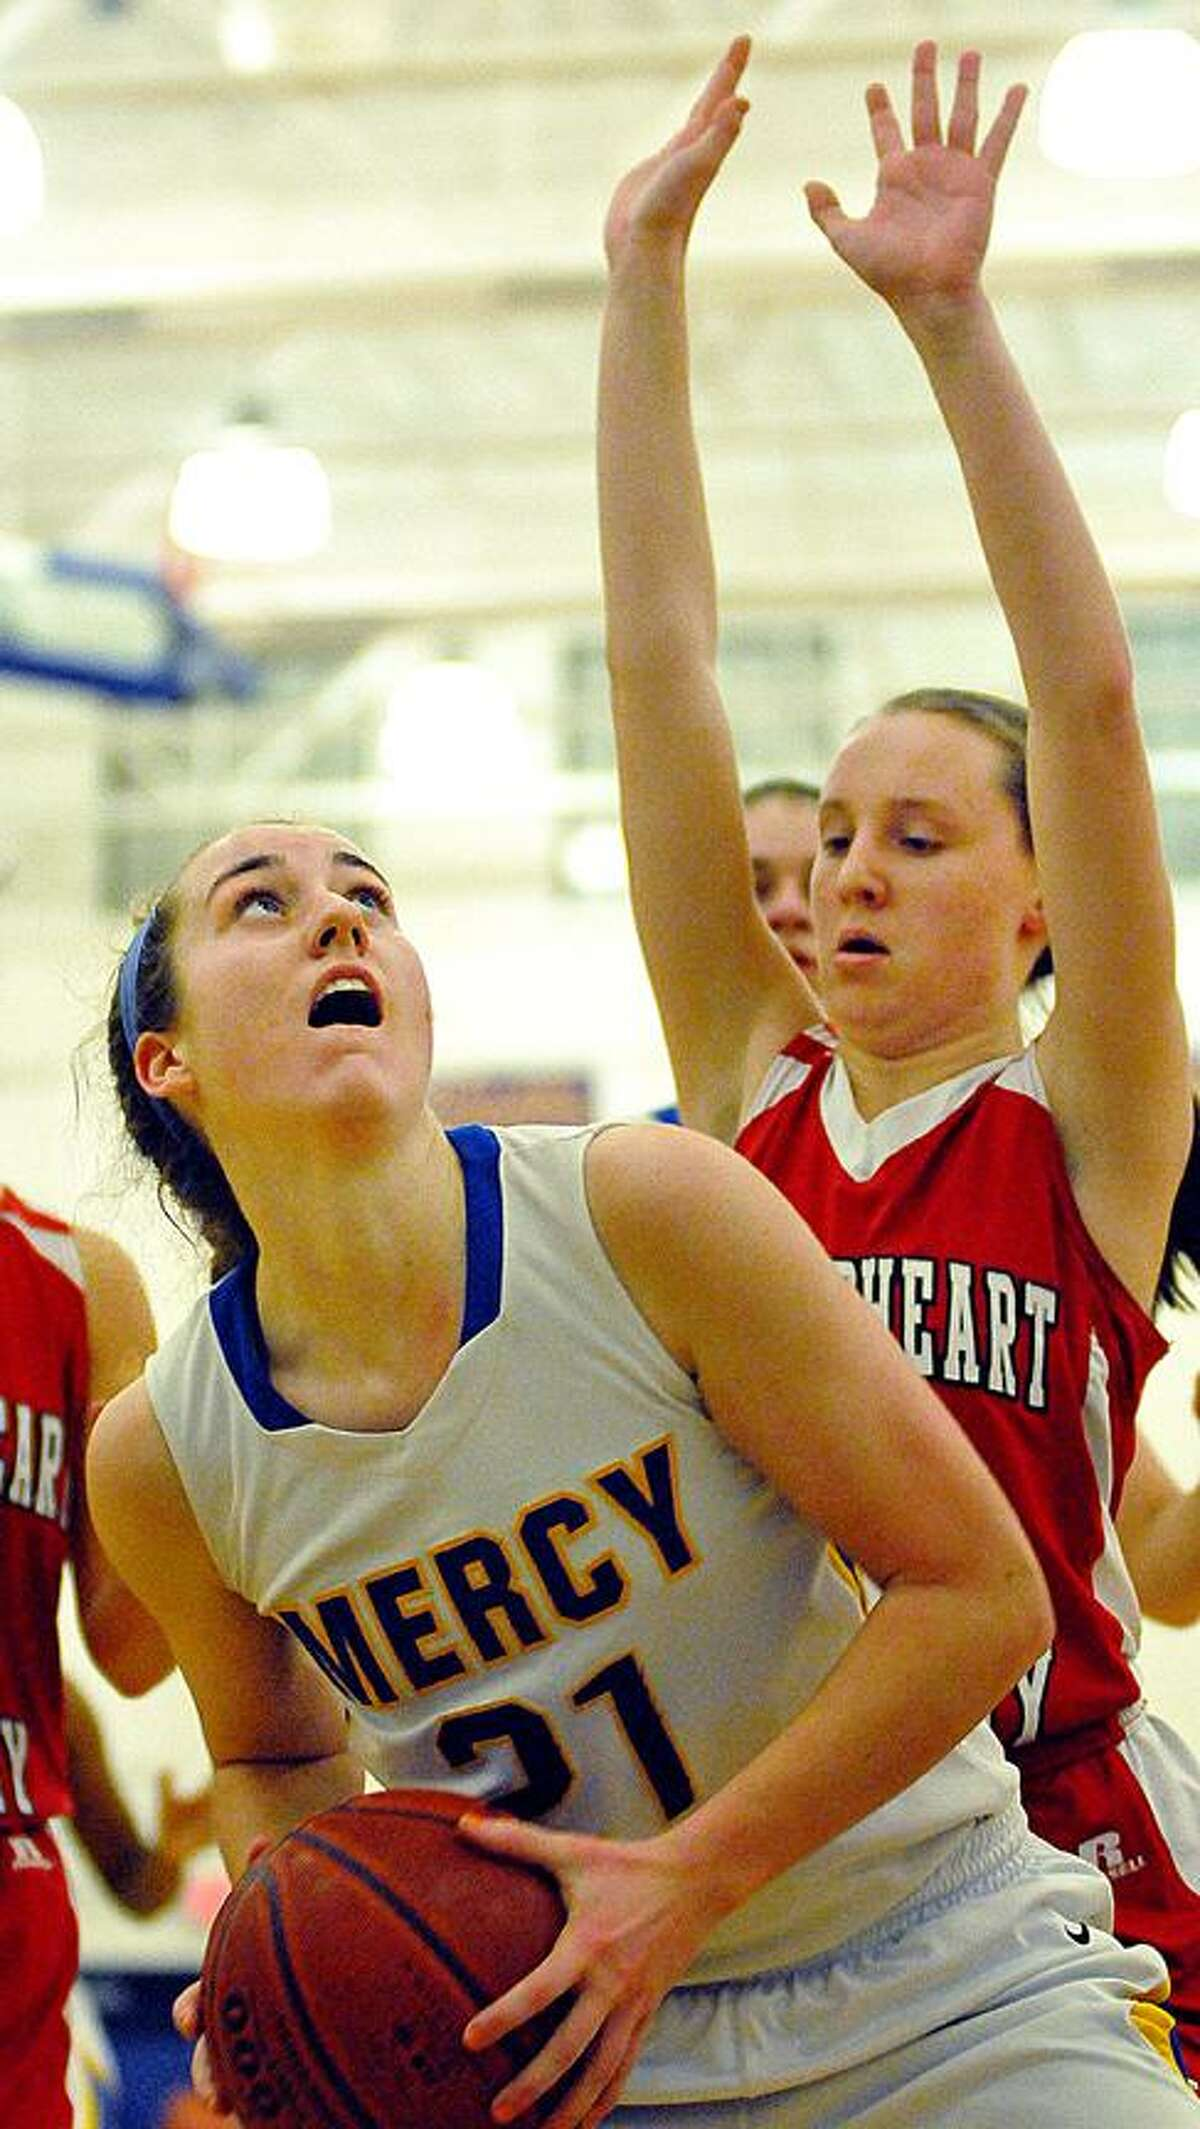 Catherine Avalone/The Middletown Press Mercy senior point guard Sheena Landy eyes the bucket as Sacred Heart freshman Kathleen Malison defends Friday night during the CIAC Class LL Second Round State Tournament. The Mercy Tigers defeated the Sacred Heart Pacers 54-26.